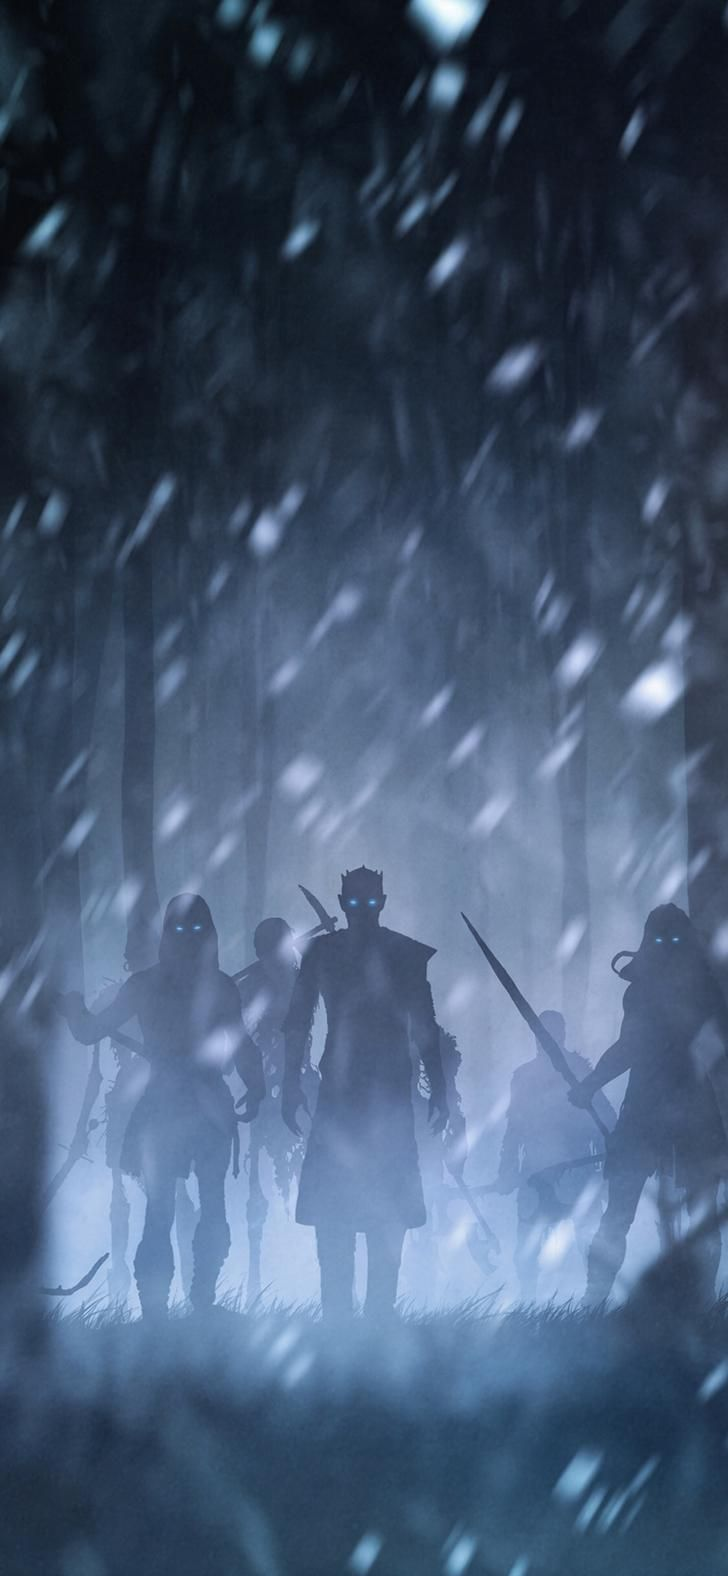 Game Of Thrones Hd Wallpapers Imgur Game Of Thrones Artwork Game Of Thrones Art Game Of Thrones Poster